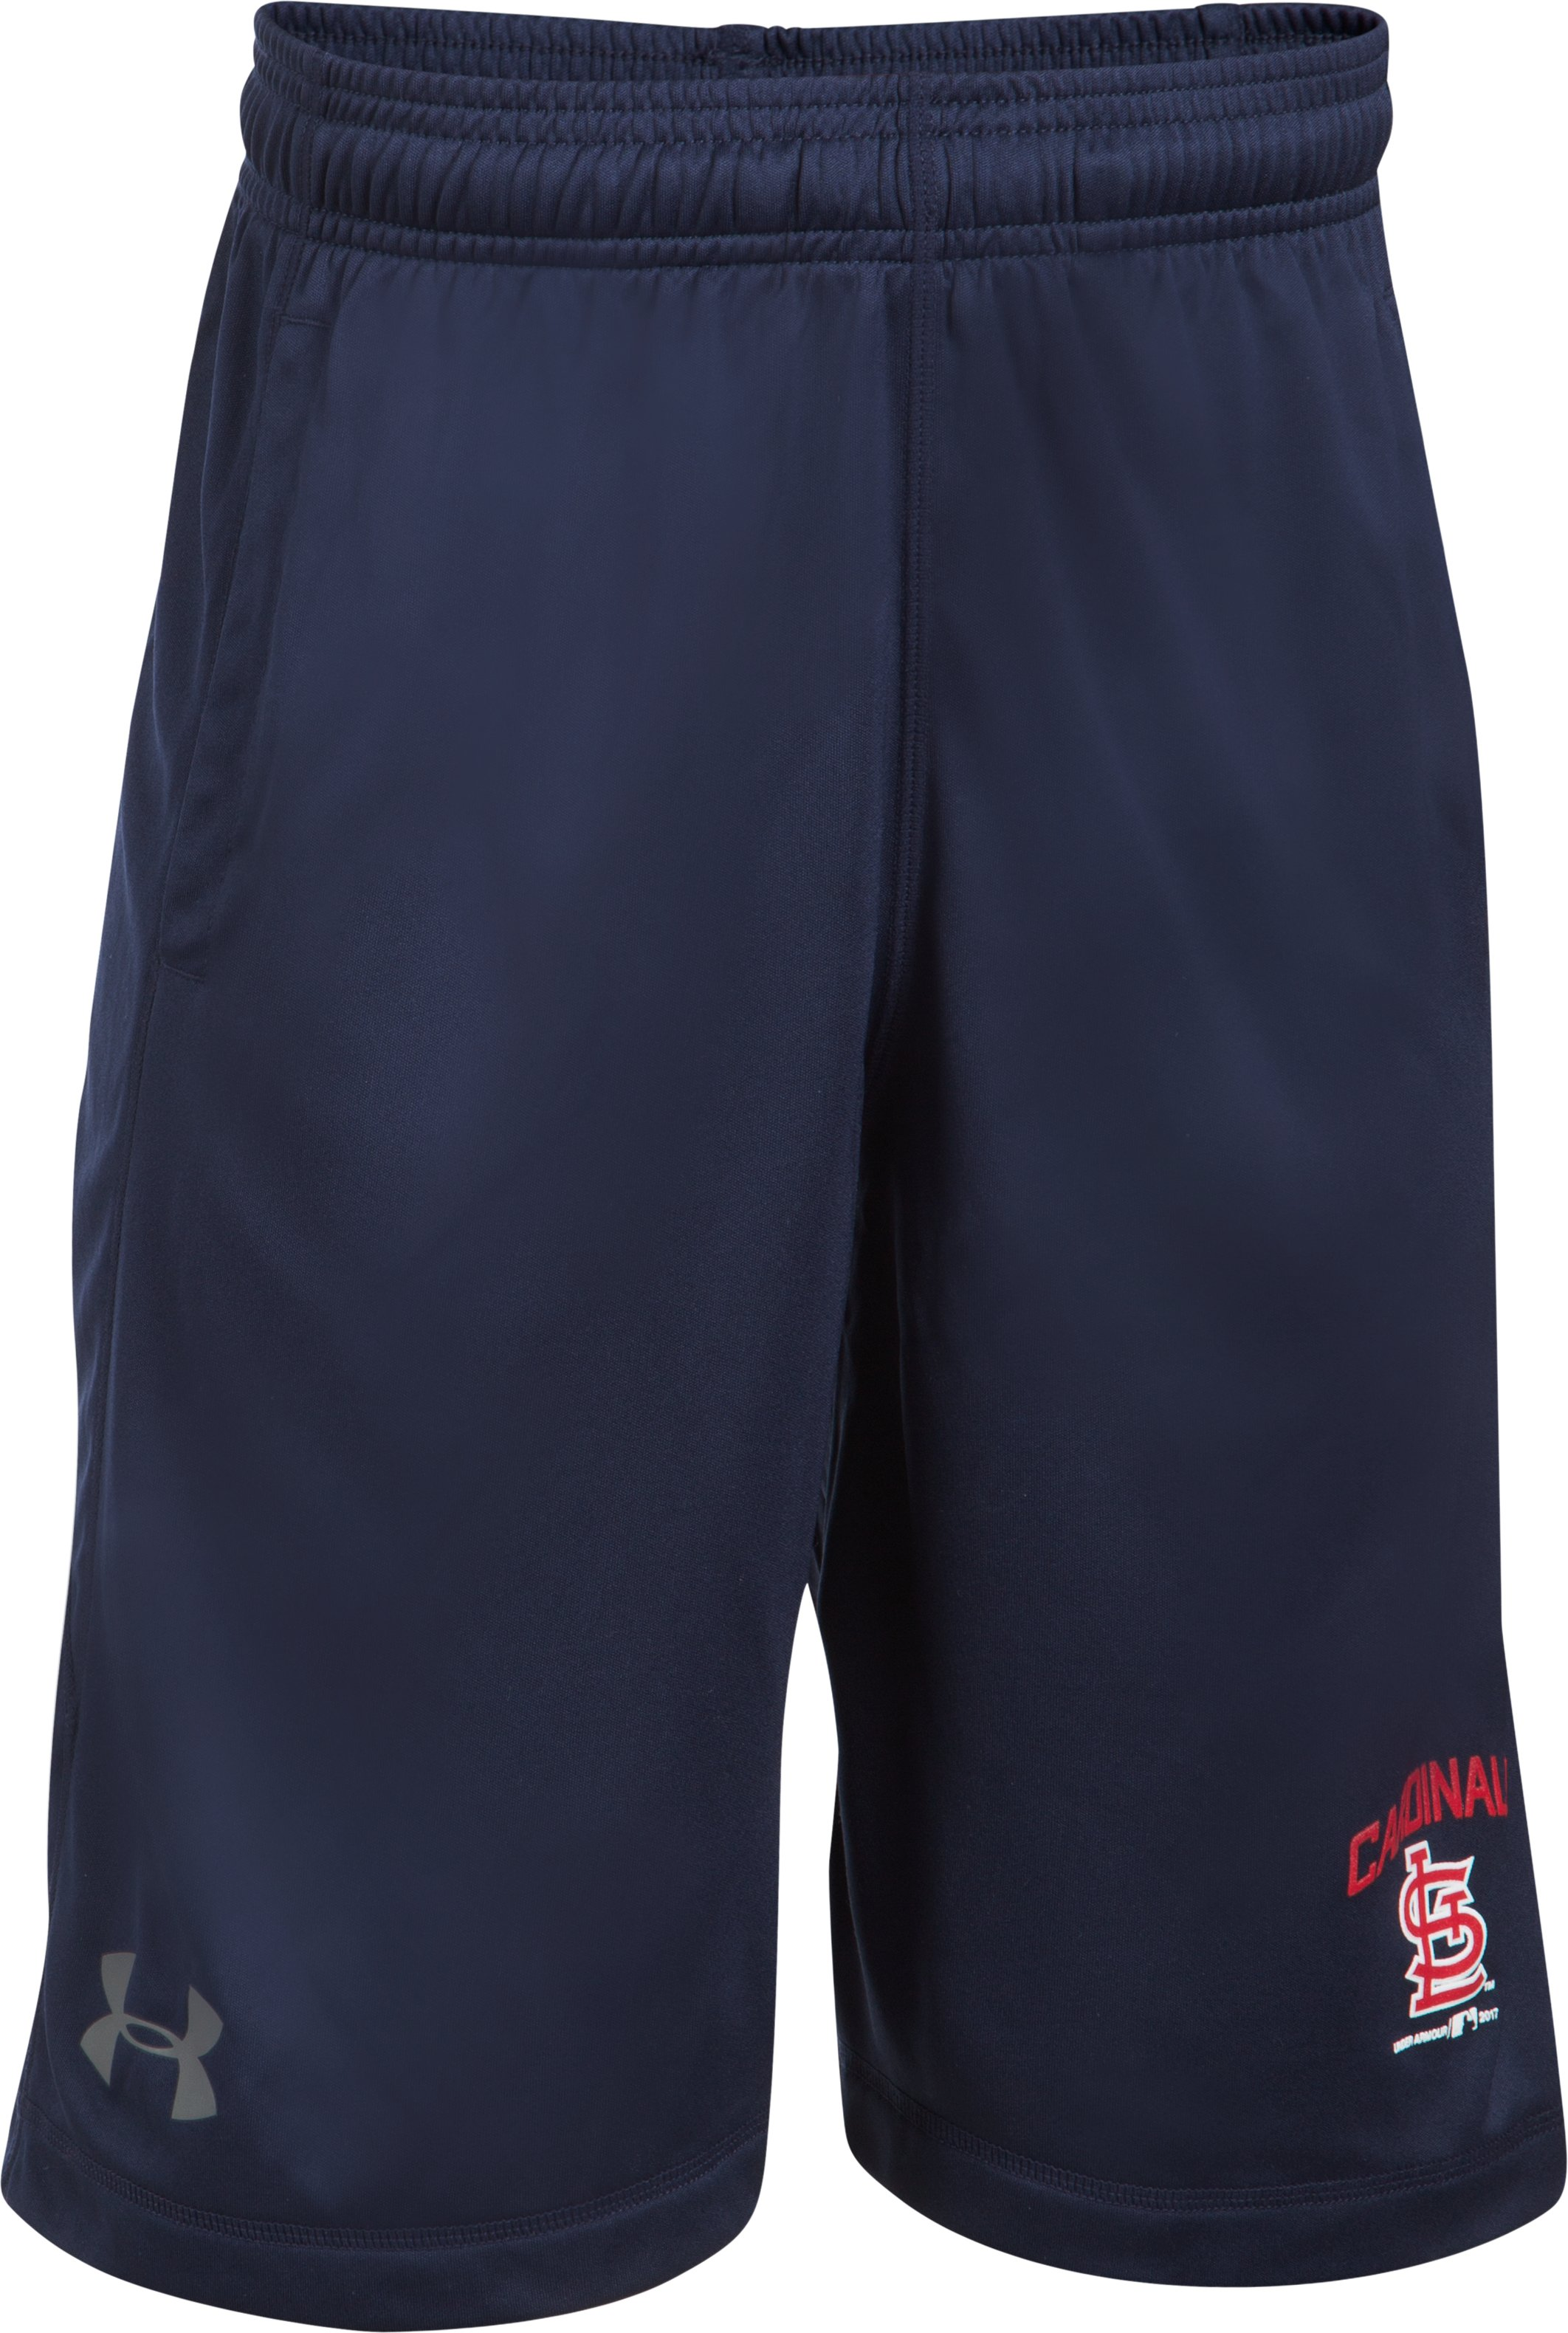 Boys' St. Louis Cardinals Training Shorts, Midnight Navy